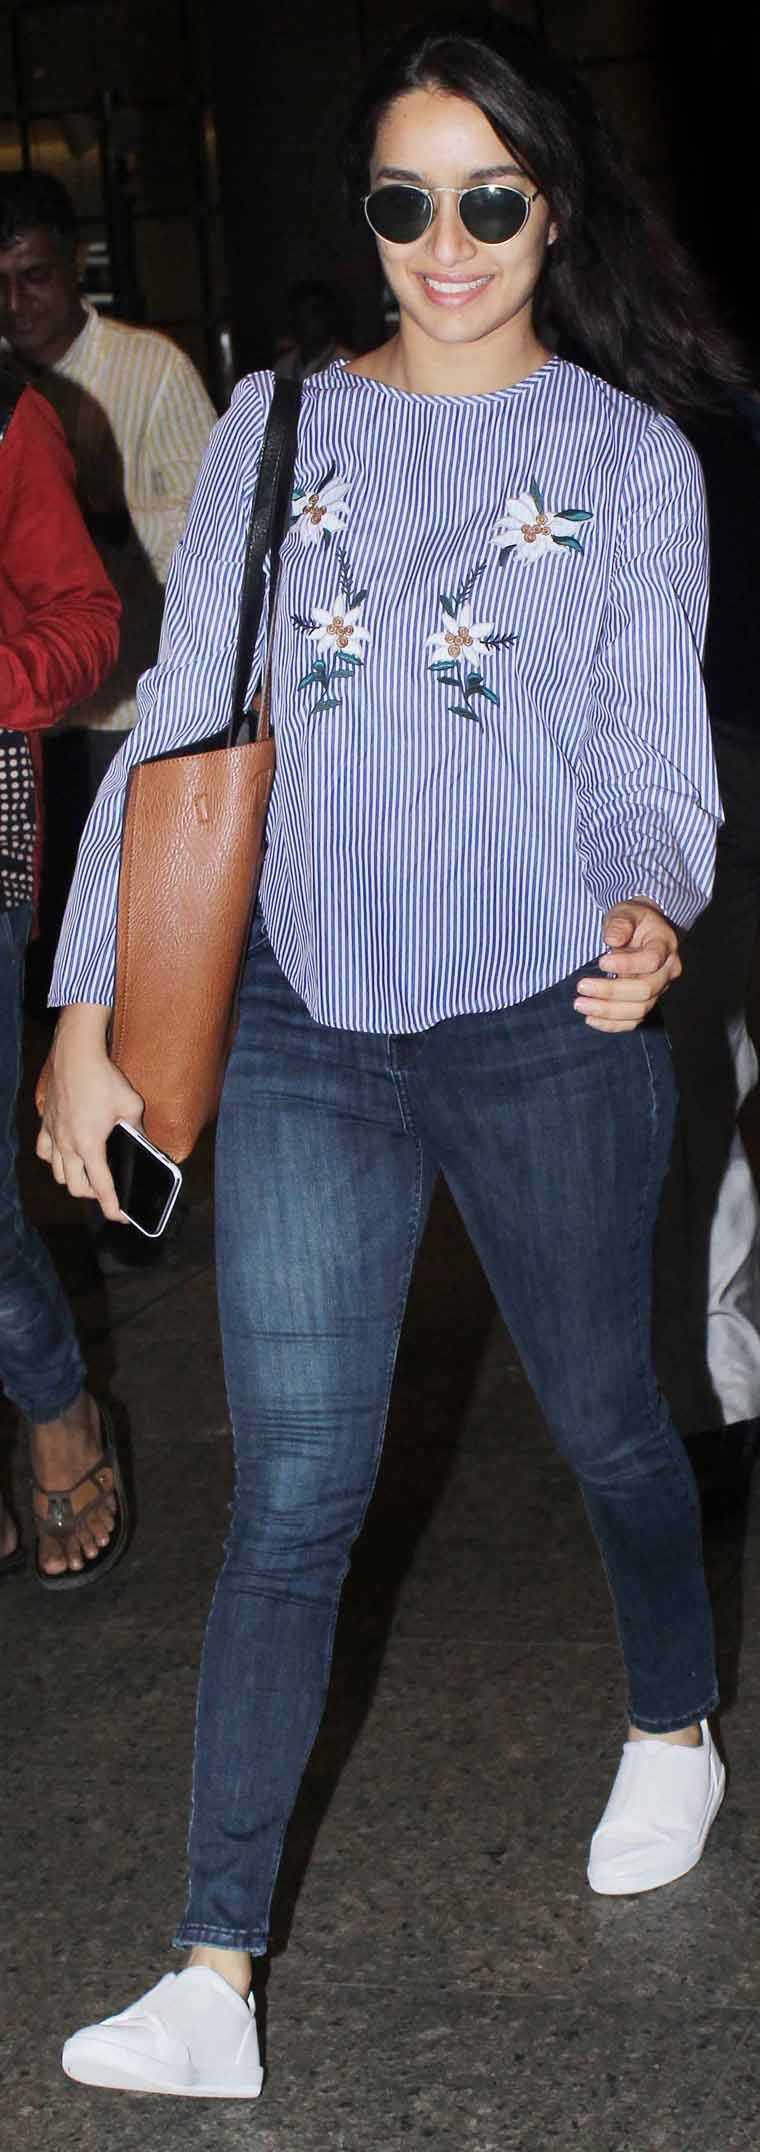 Shraddha Kapoor aced travel fashion in a breezy striped blouse paired with denims and white kicks.